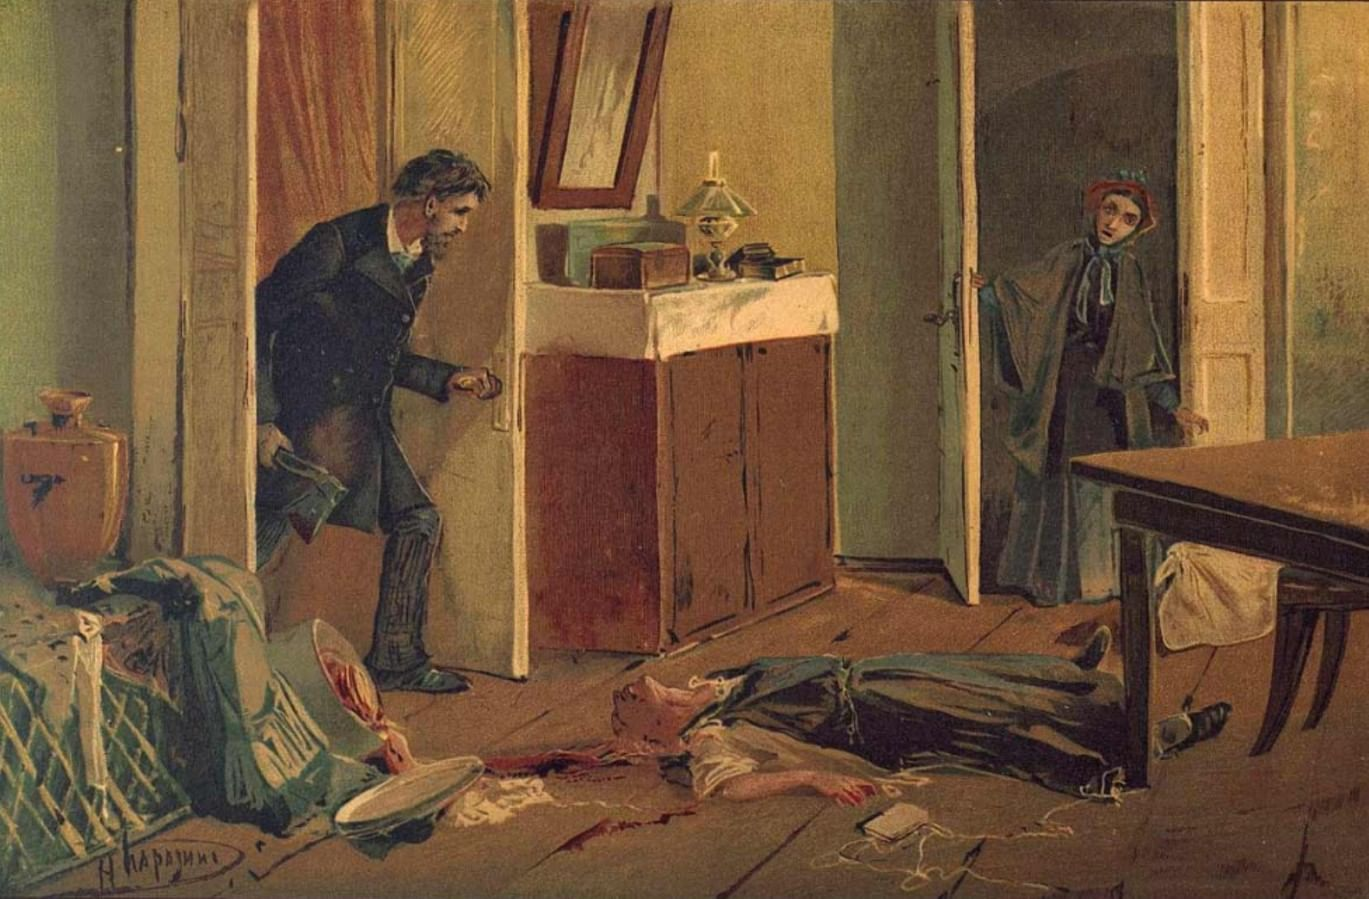 an analysis of raskolnikov dostoevskys views on criminal justice Dostoevsky's crime and punishment: protagonist & antagonist raskolnikov was not a criminal justice in king lear.